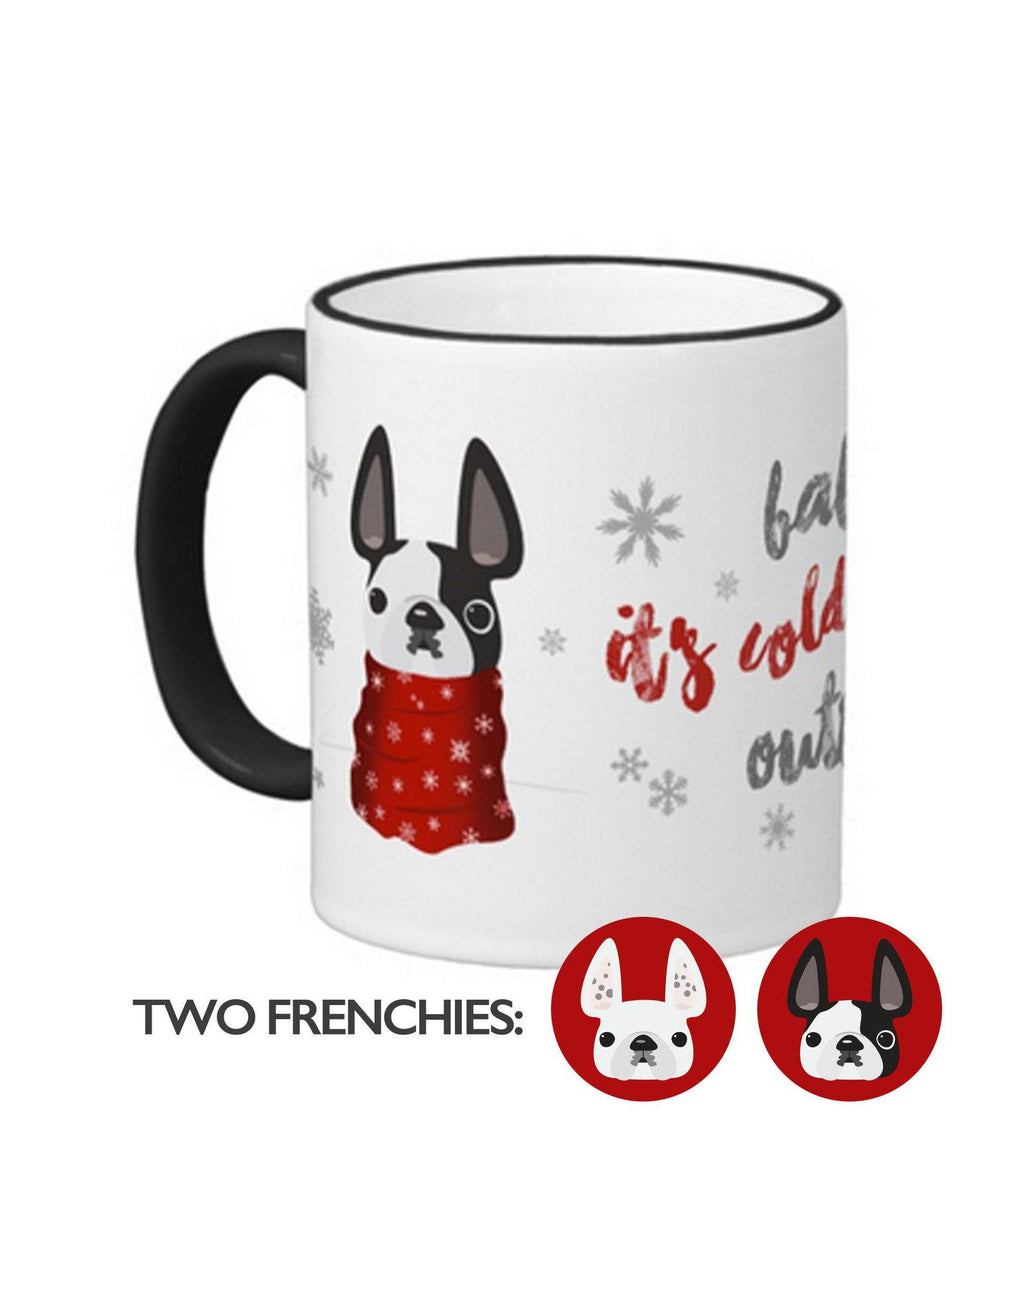 Baby It's Cold Outside Double Frenchie Coffee Mug / Black Pied & Spotted White - French Bulldog Love - 1